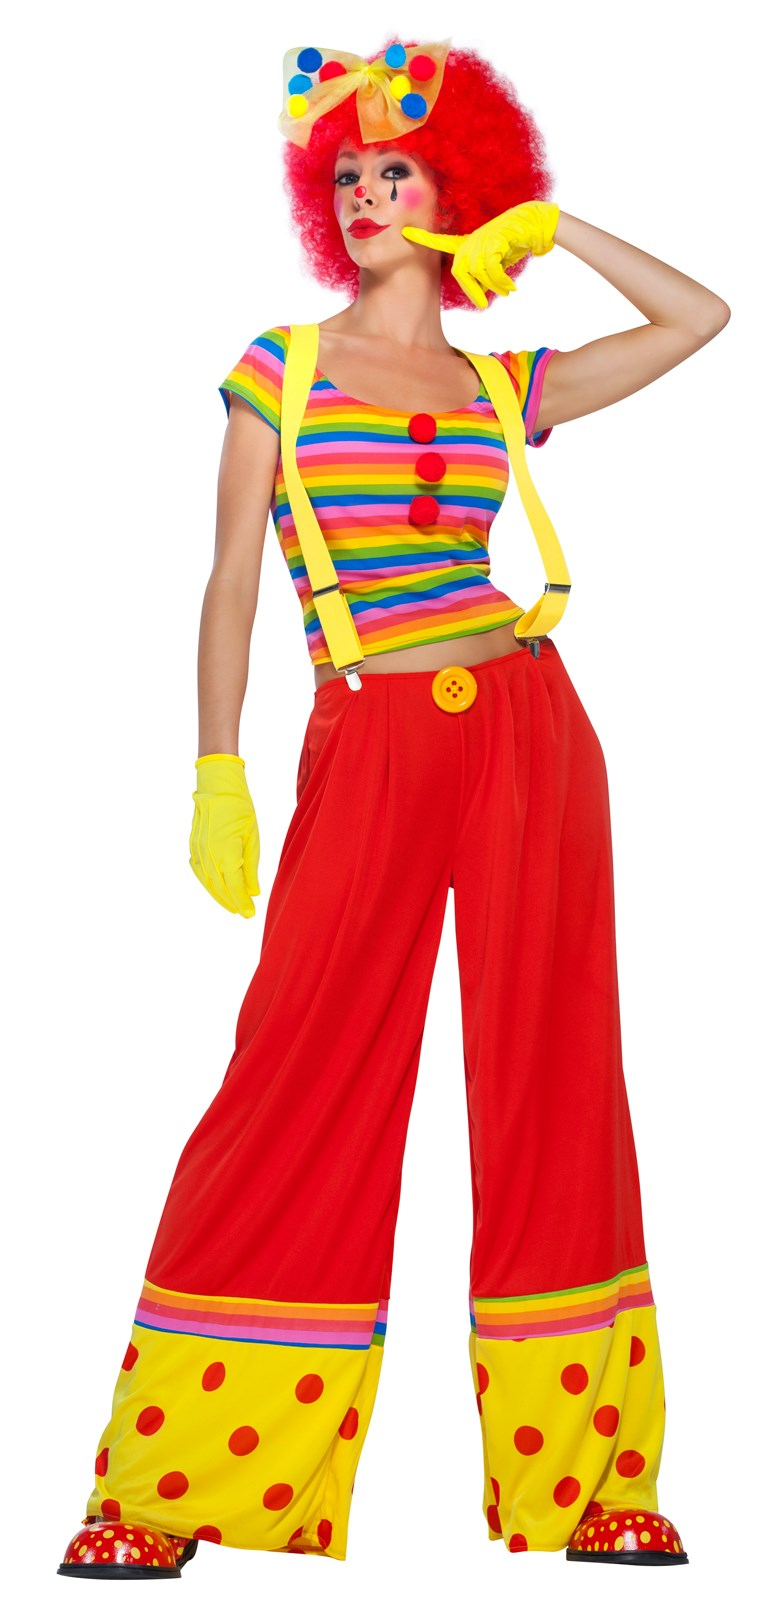 Moppie The Clown - Adult Costume